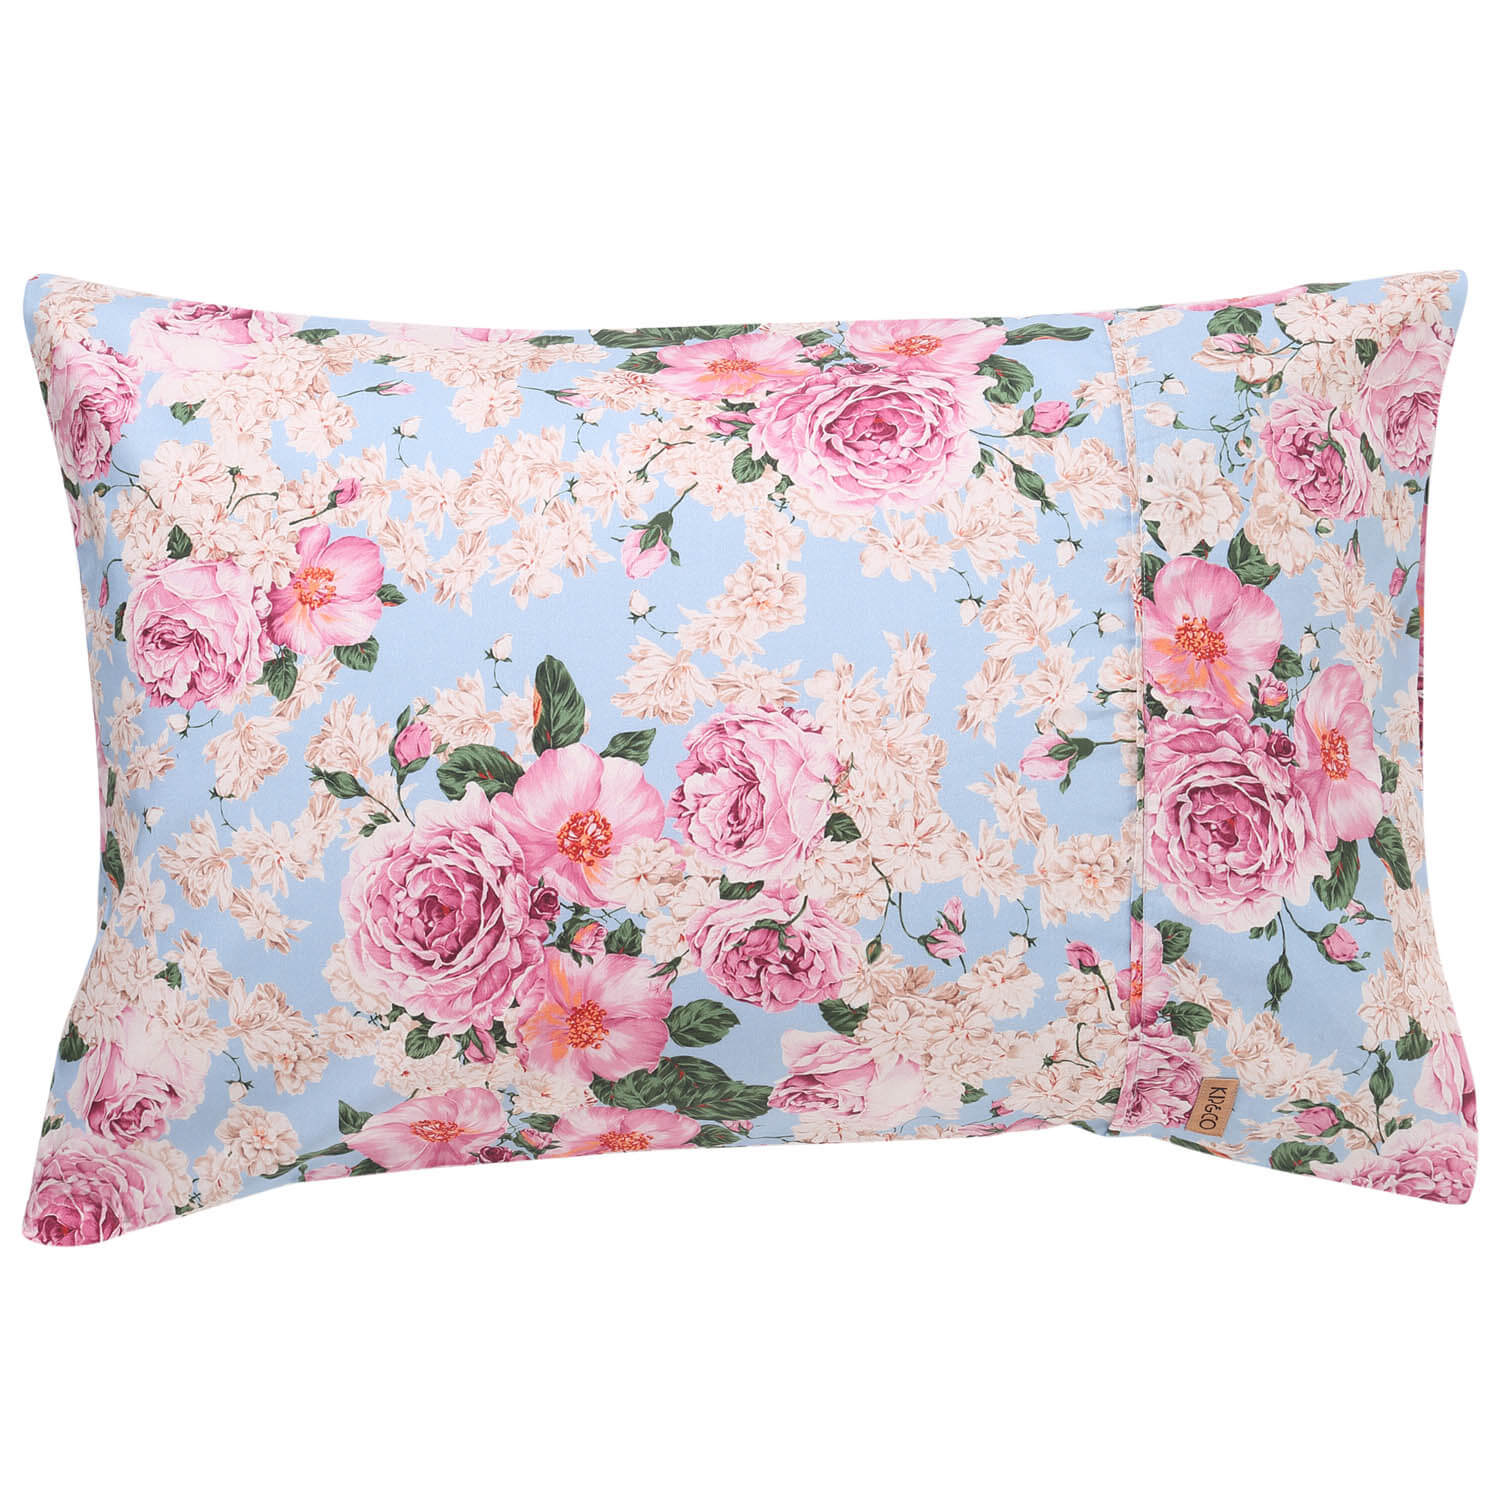 Kip and Co Peony pillowcase set | The Home Maven